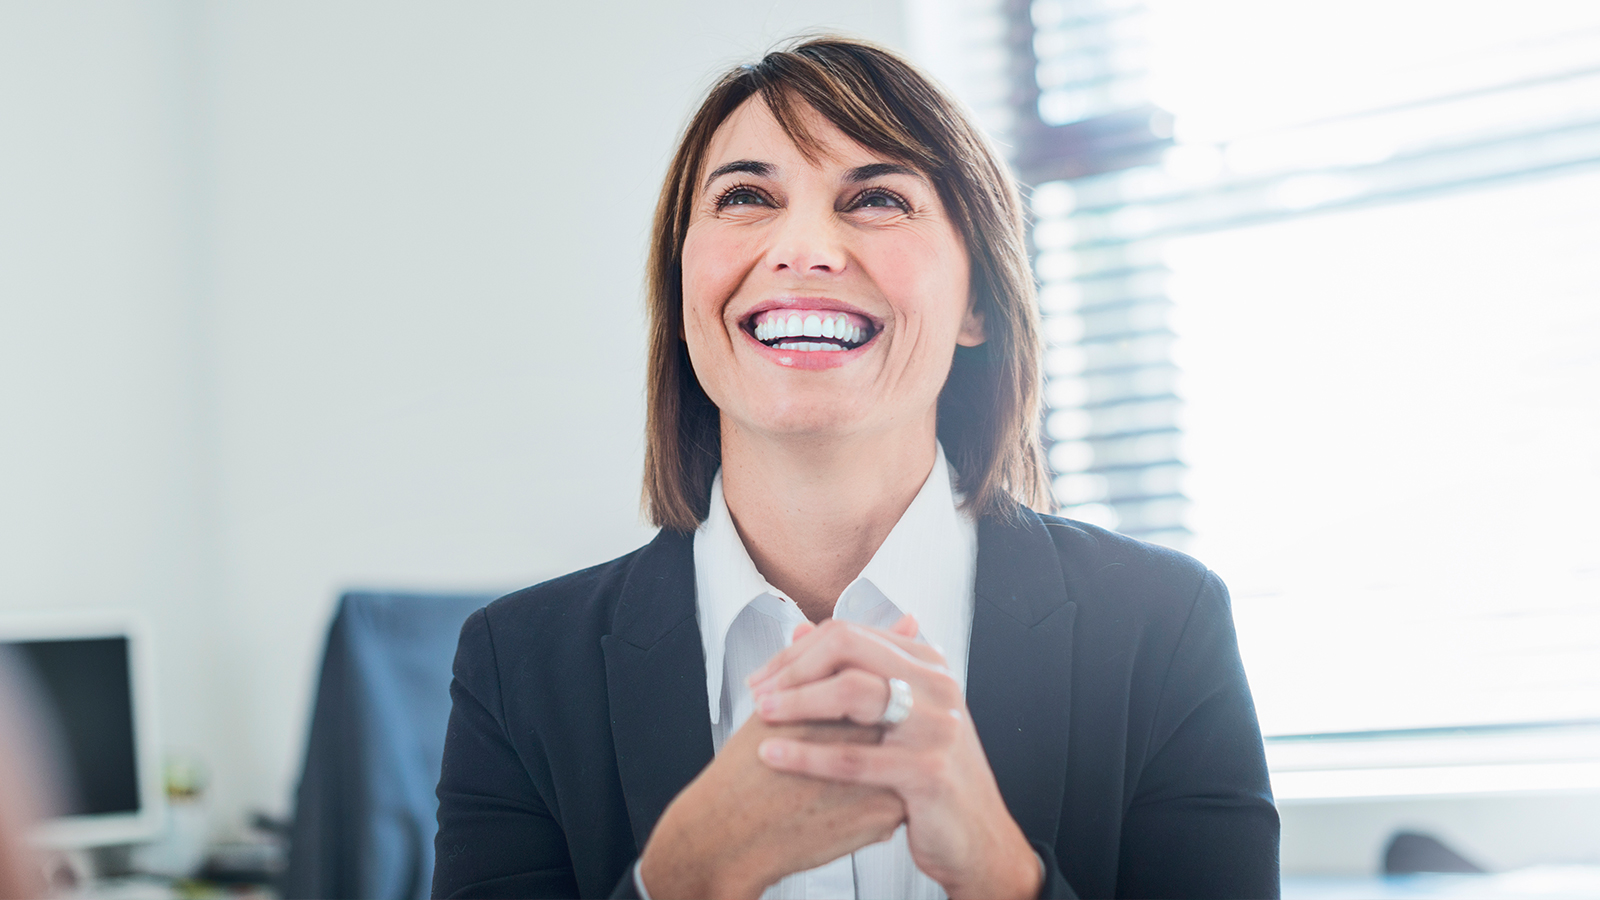 25 interview questions to land you the job